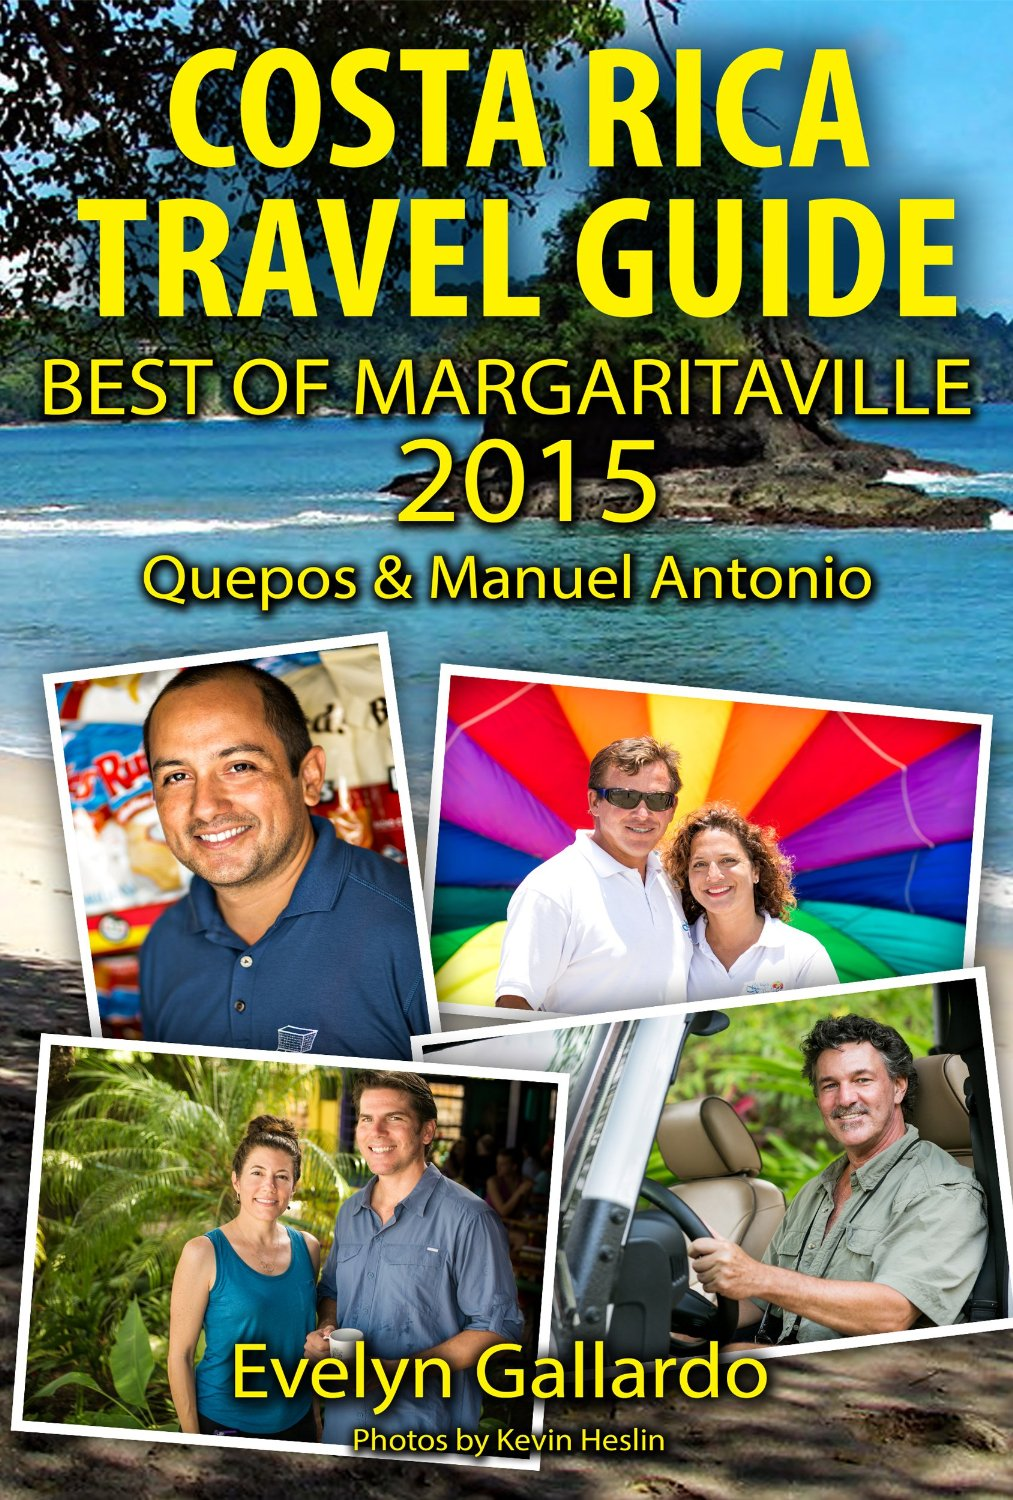 Costa Rica Travel Guide, Best of Margaritaville 2015: Quepos & Manuel Antonio free download